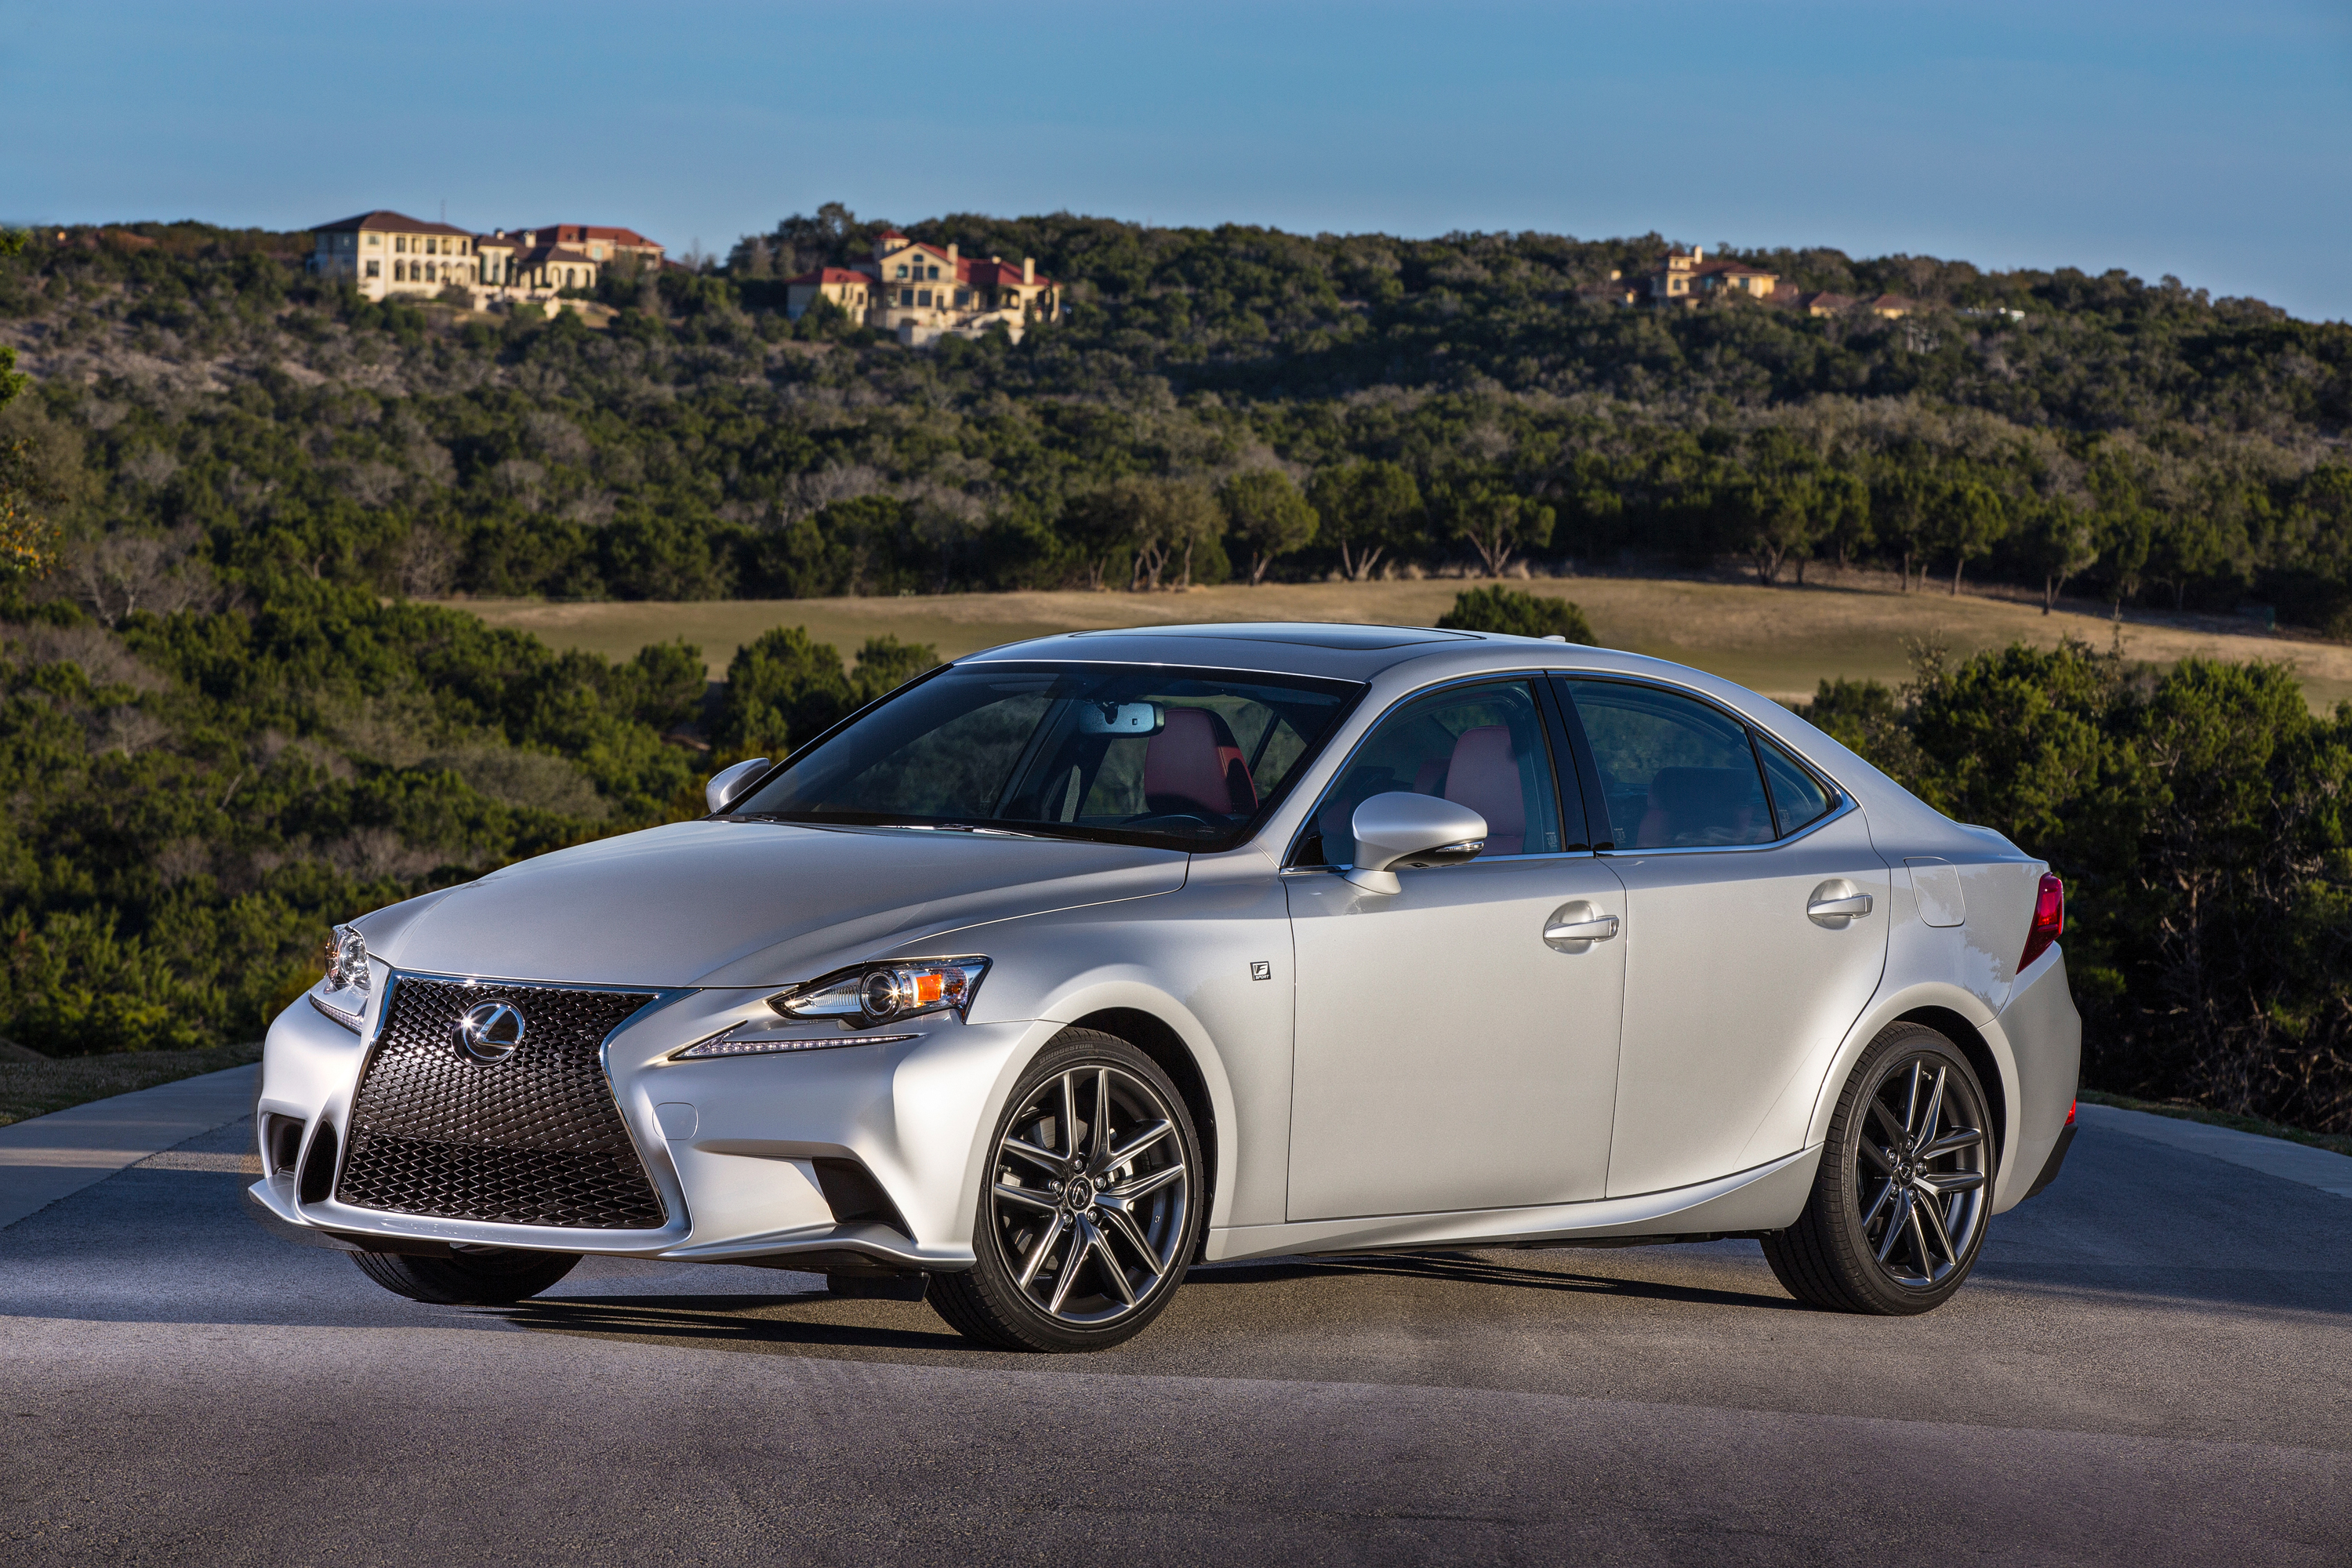 Lexus Is Sport Sedan Gets Revved Up In 2016 With Three Available Engines Lexus Usa Newsroom